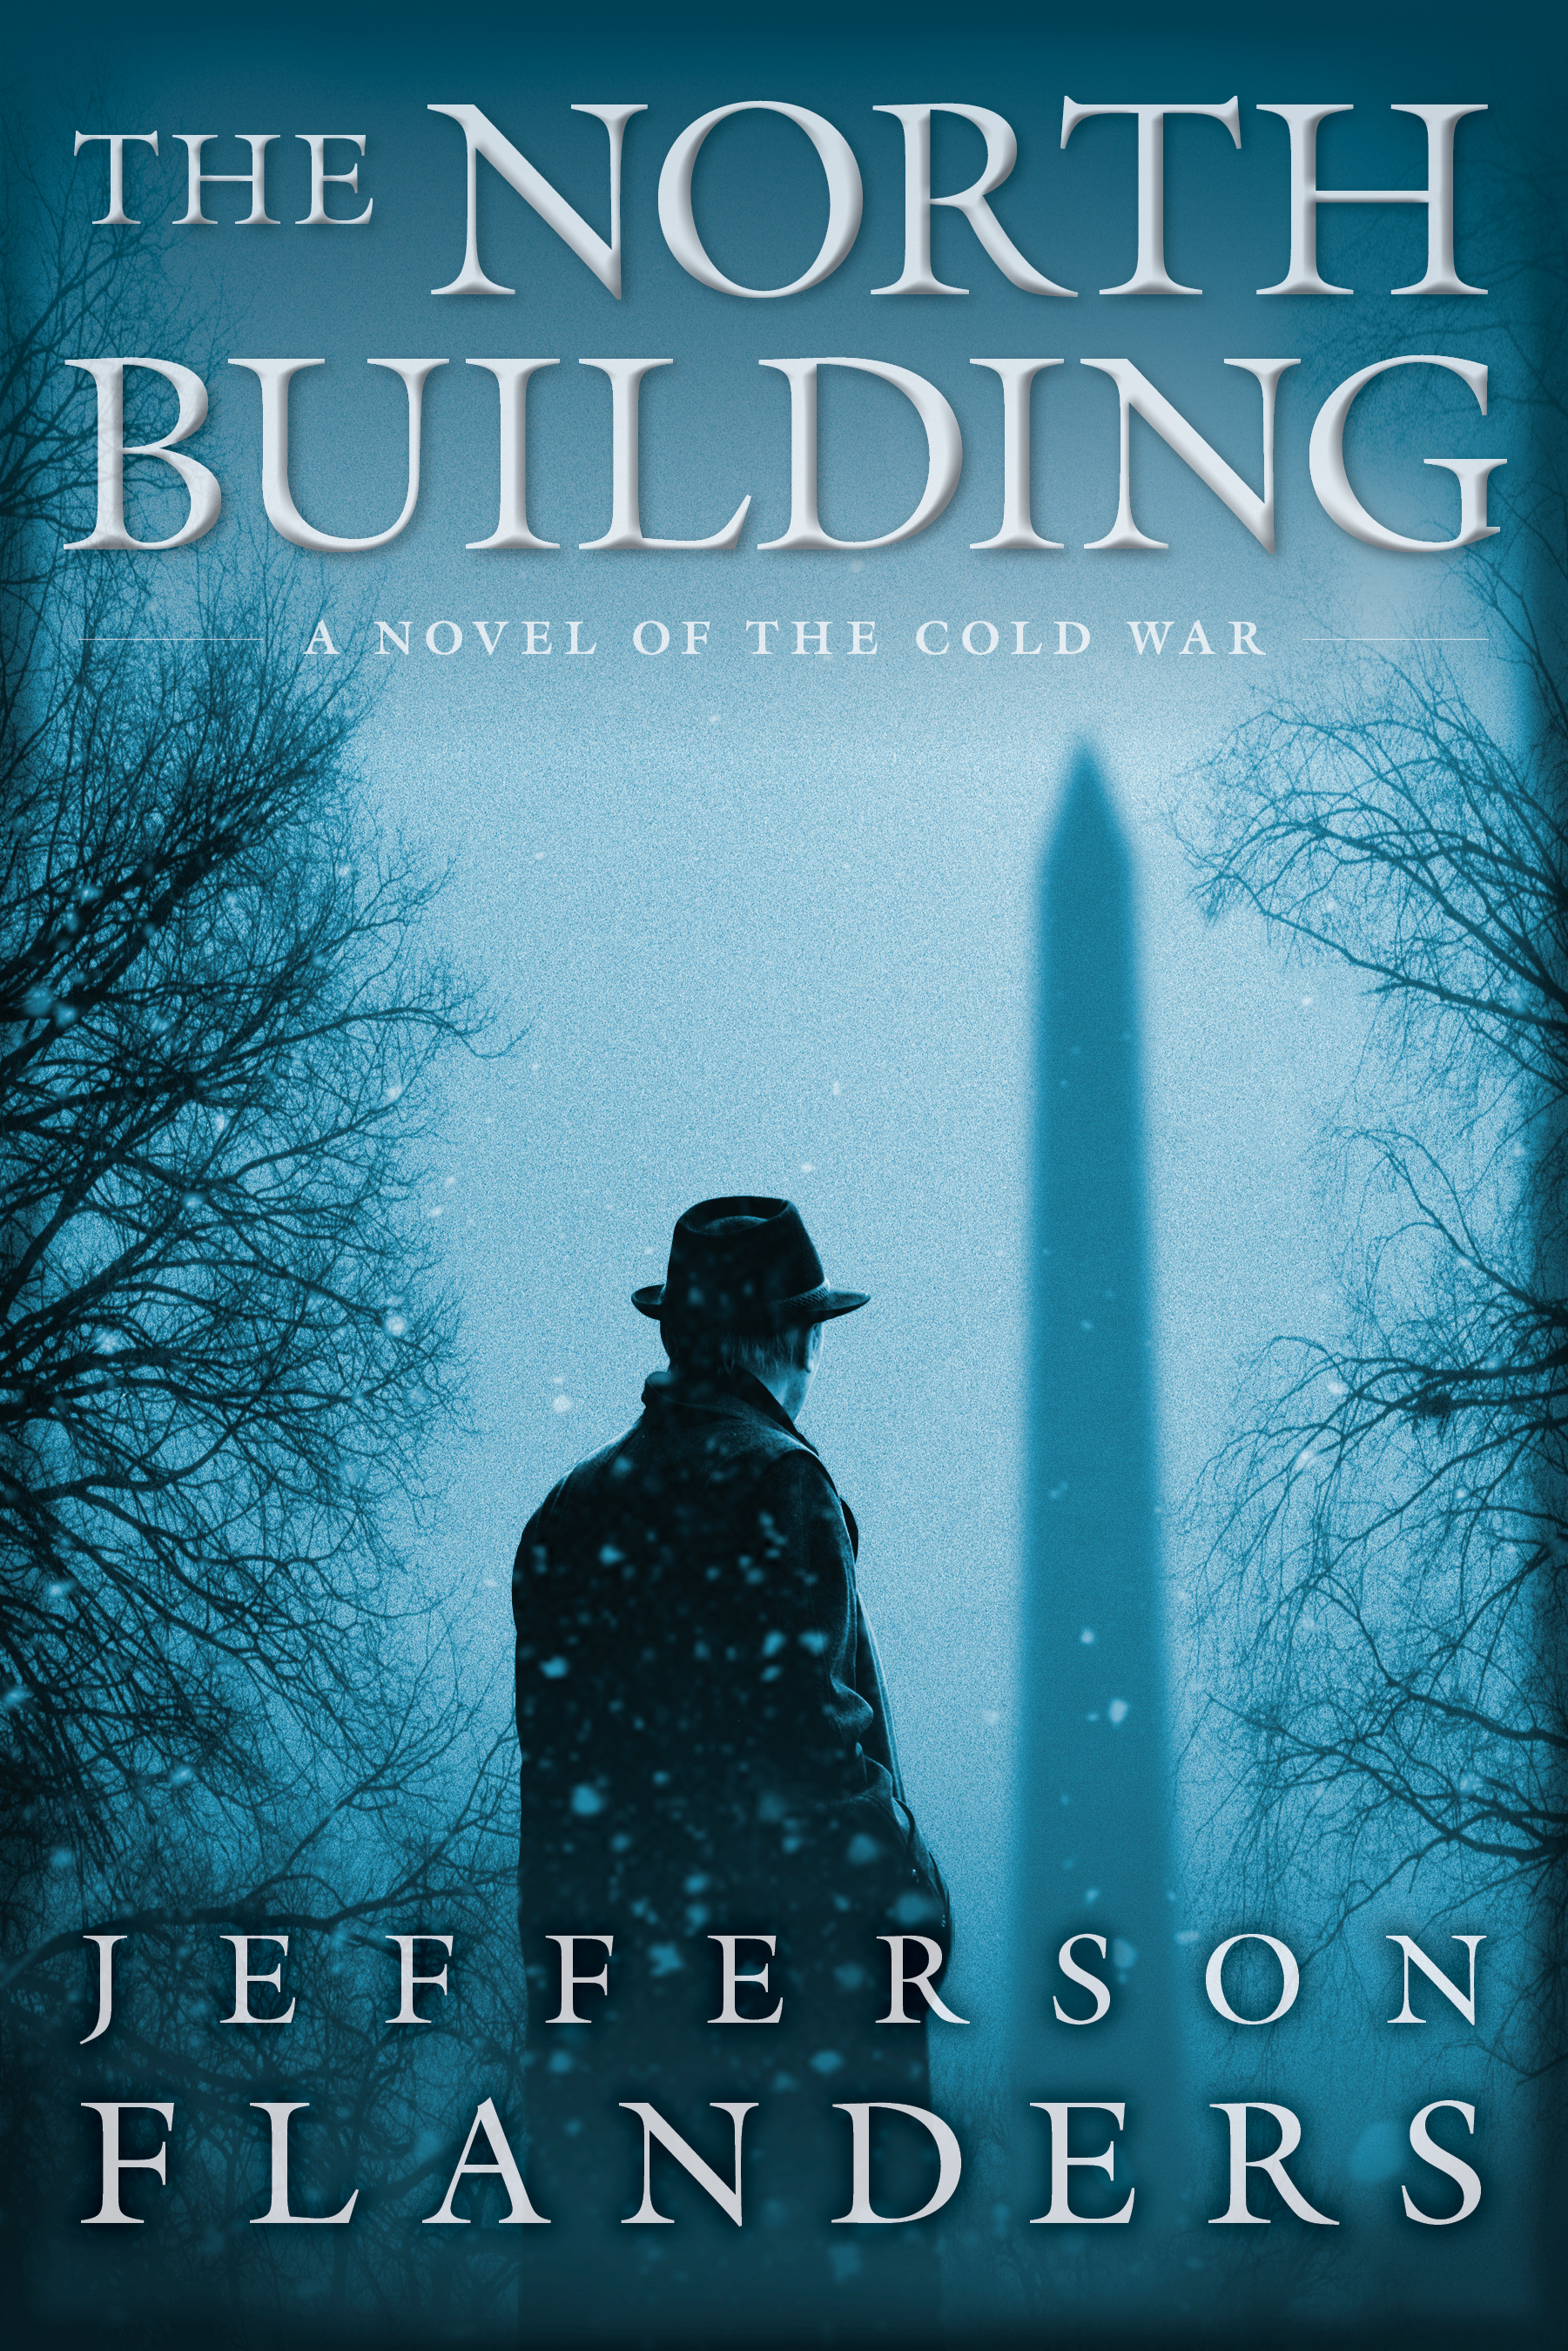 The North Building, a novel by Jefferson Flanders